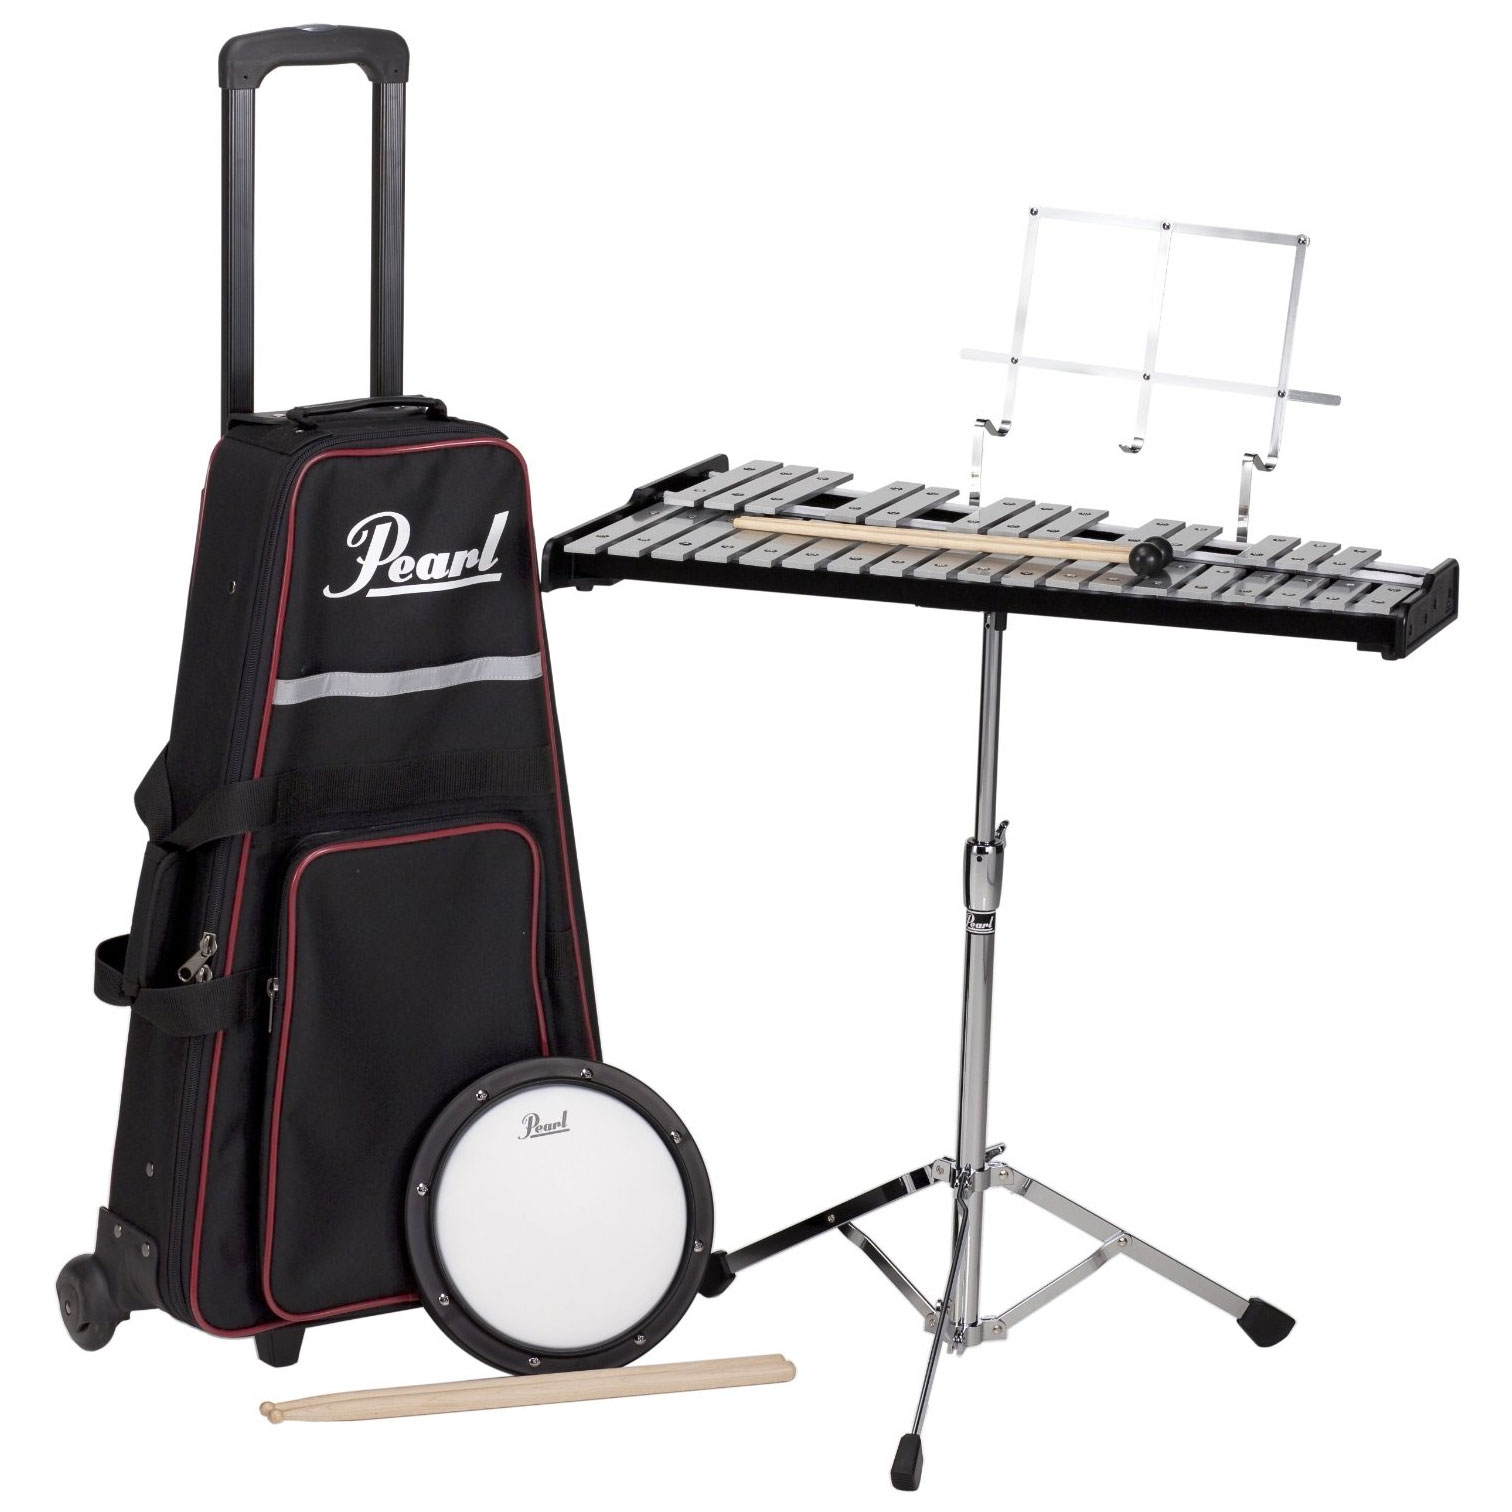 Pearl Beginner Percussion Kit with Pull Along Cart